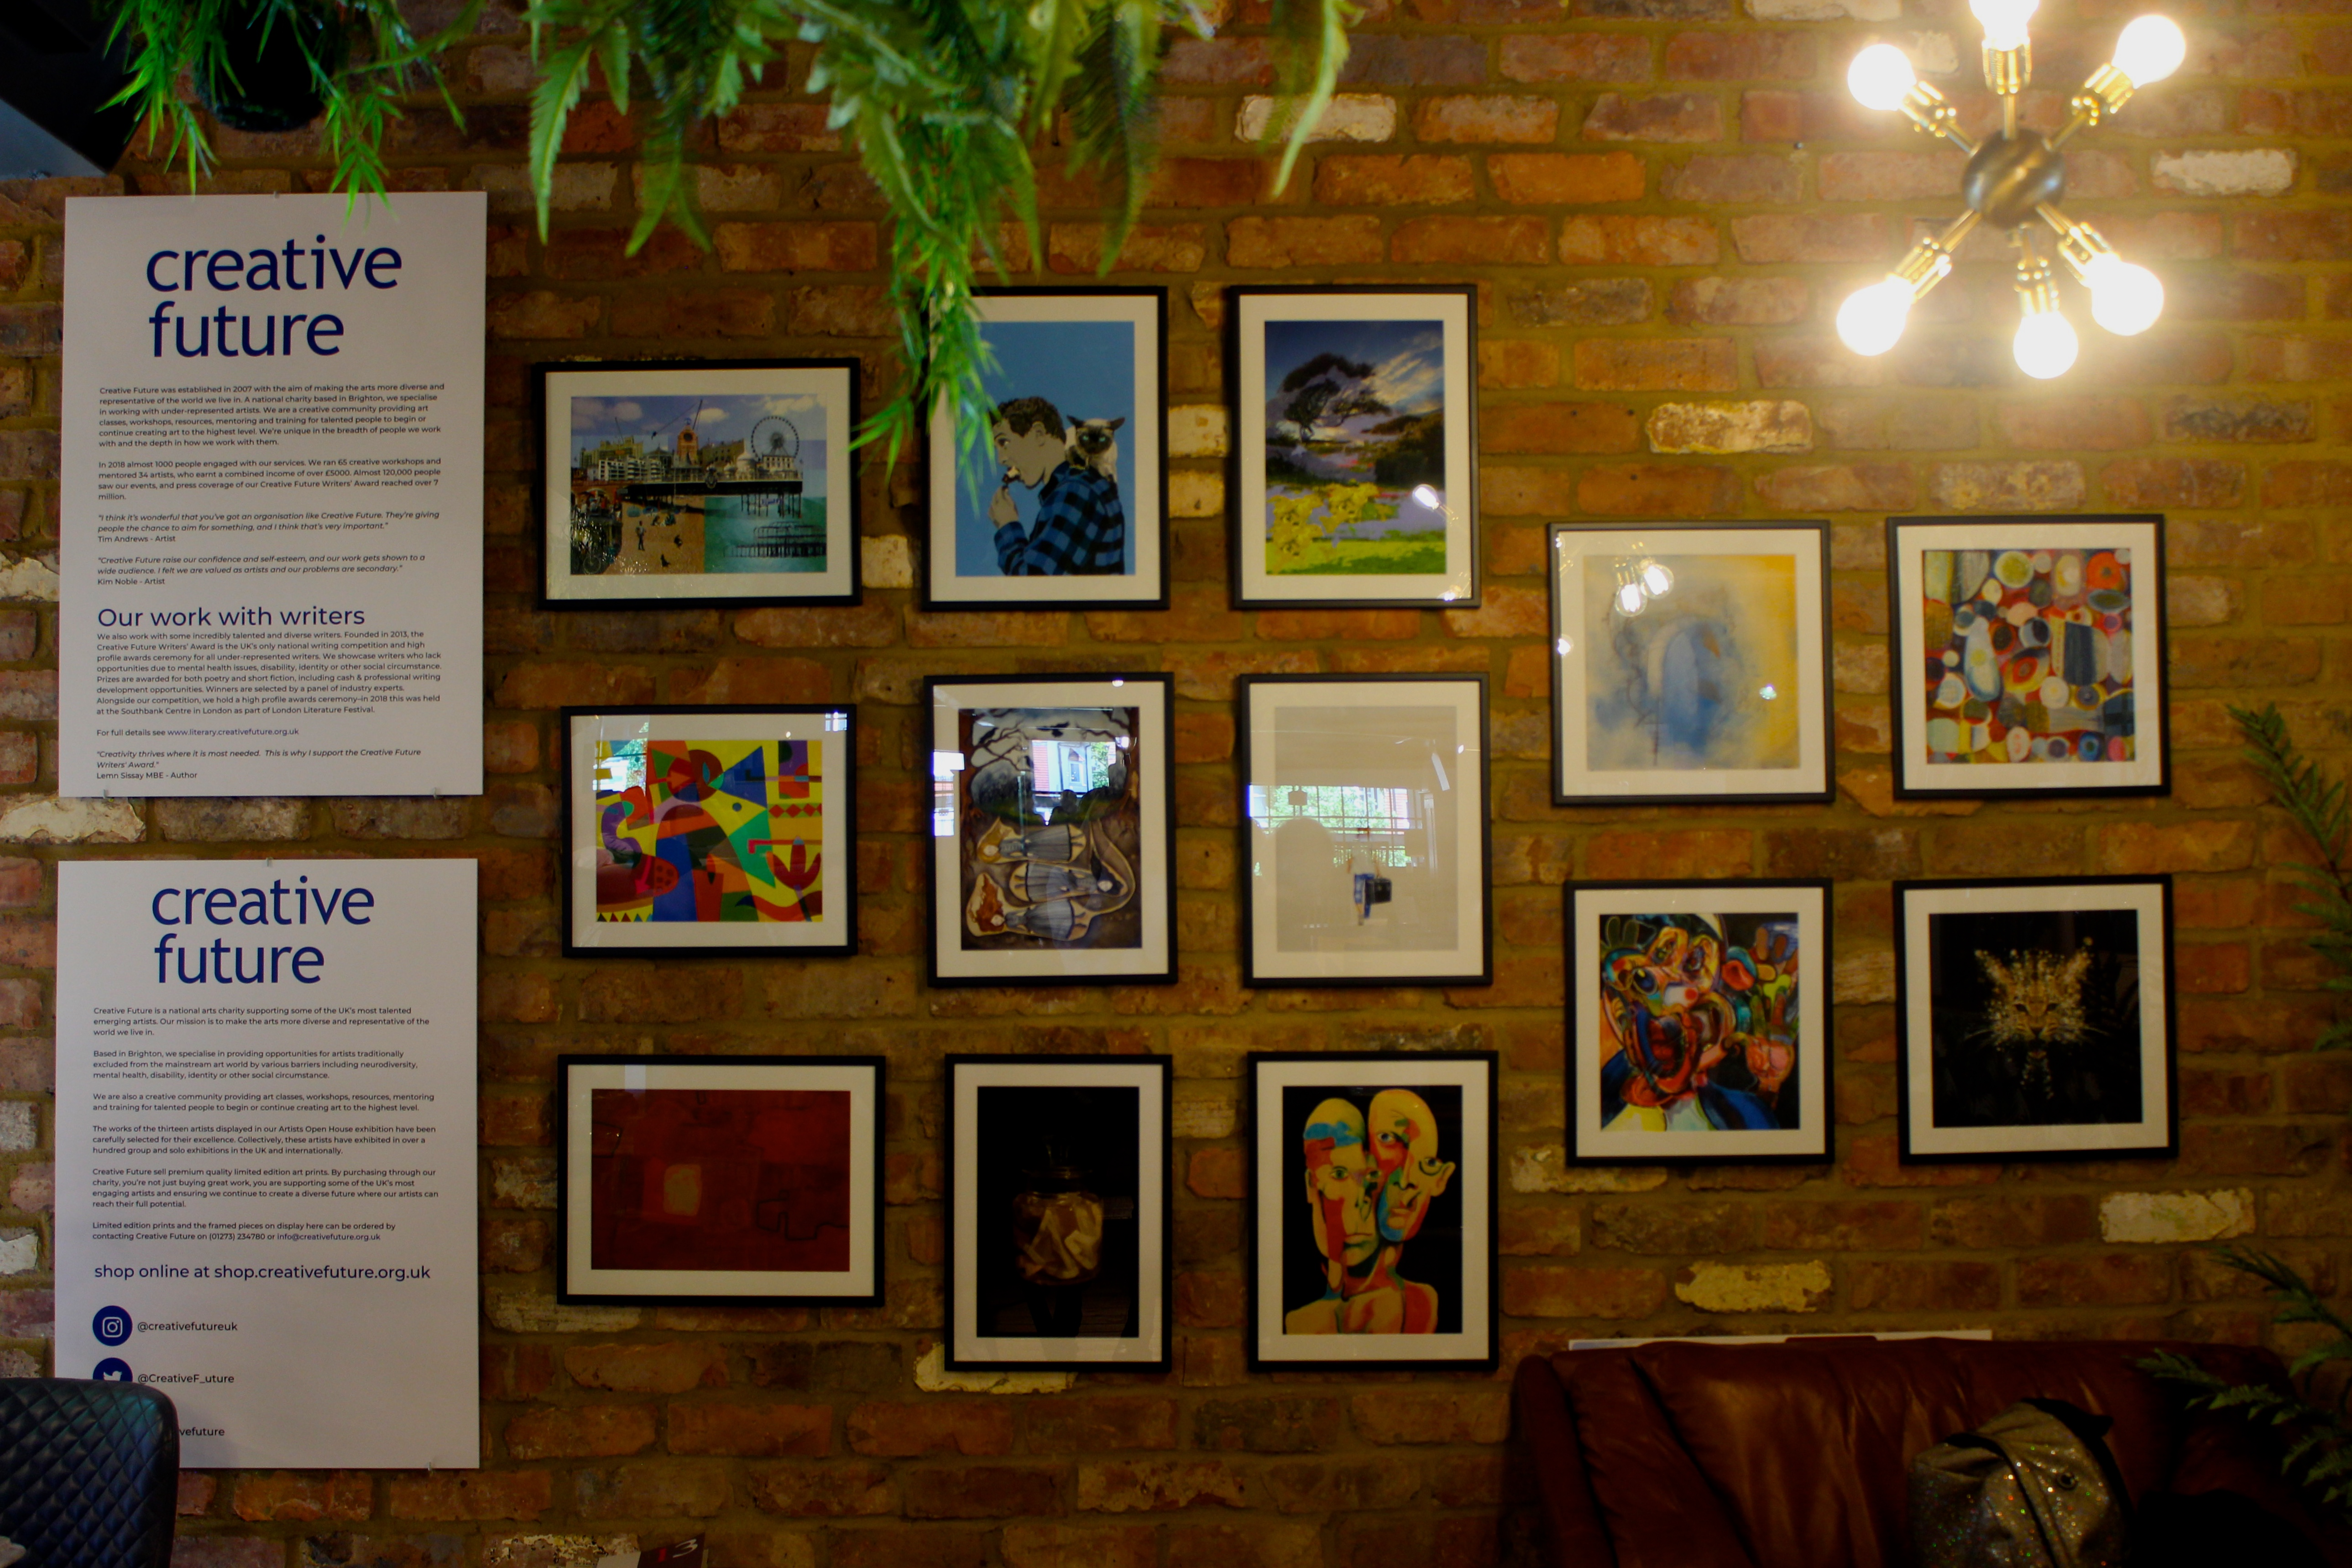 Artists Open Houses exhibition inside Barker and Stonehouse Hove